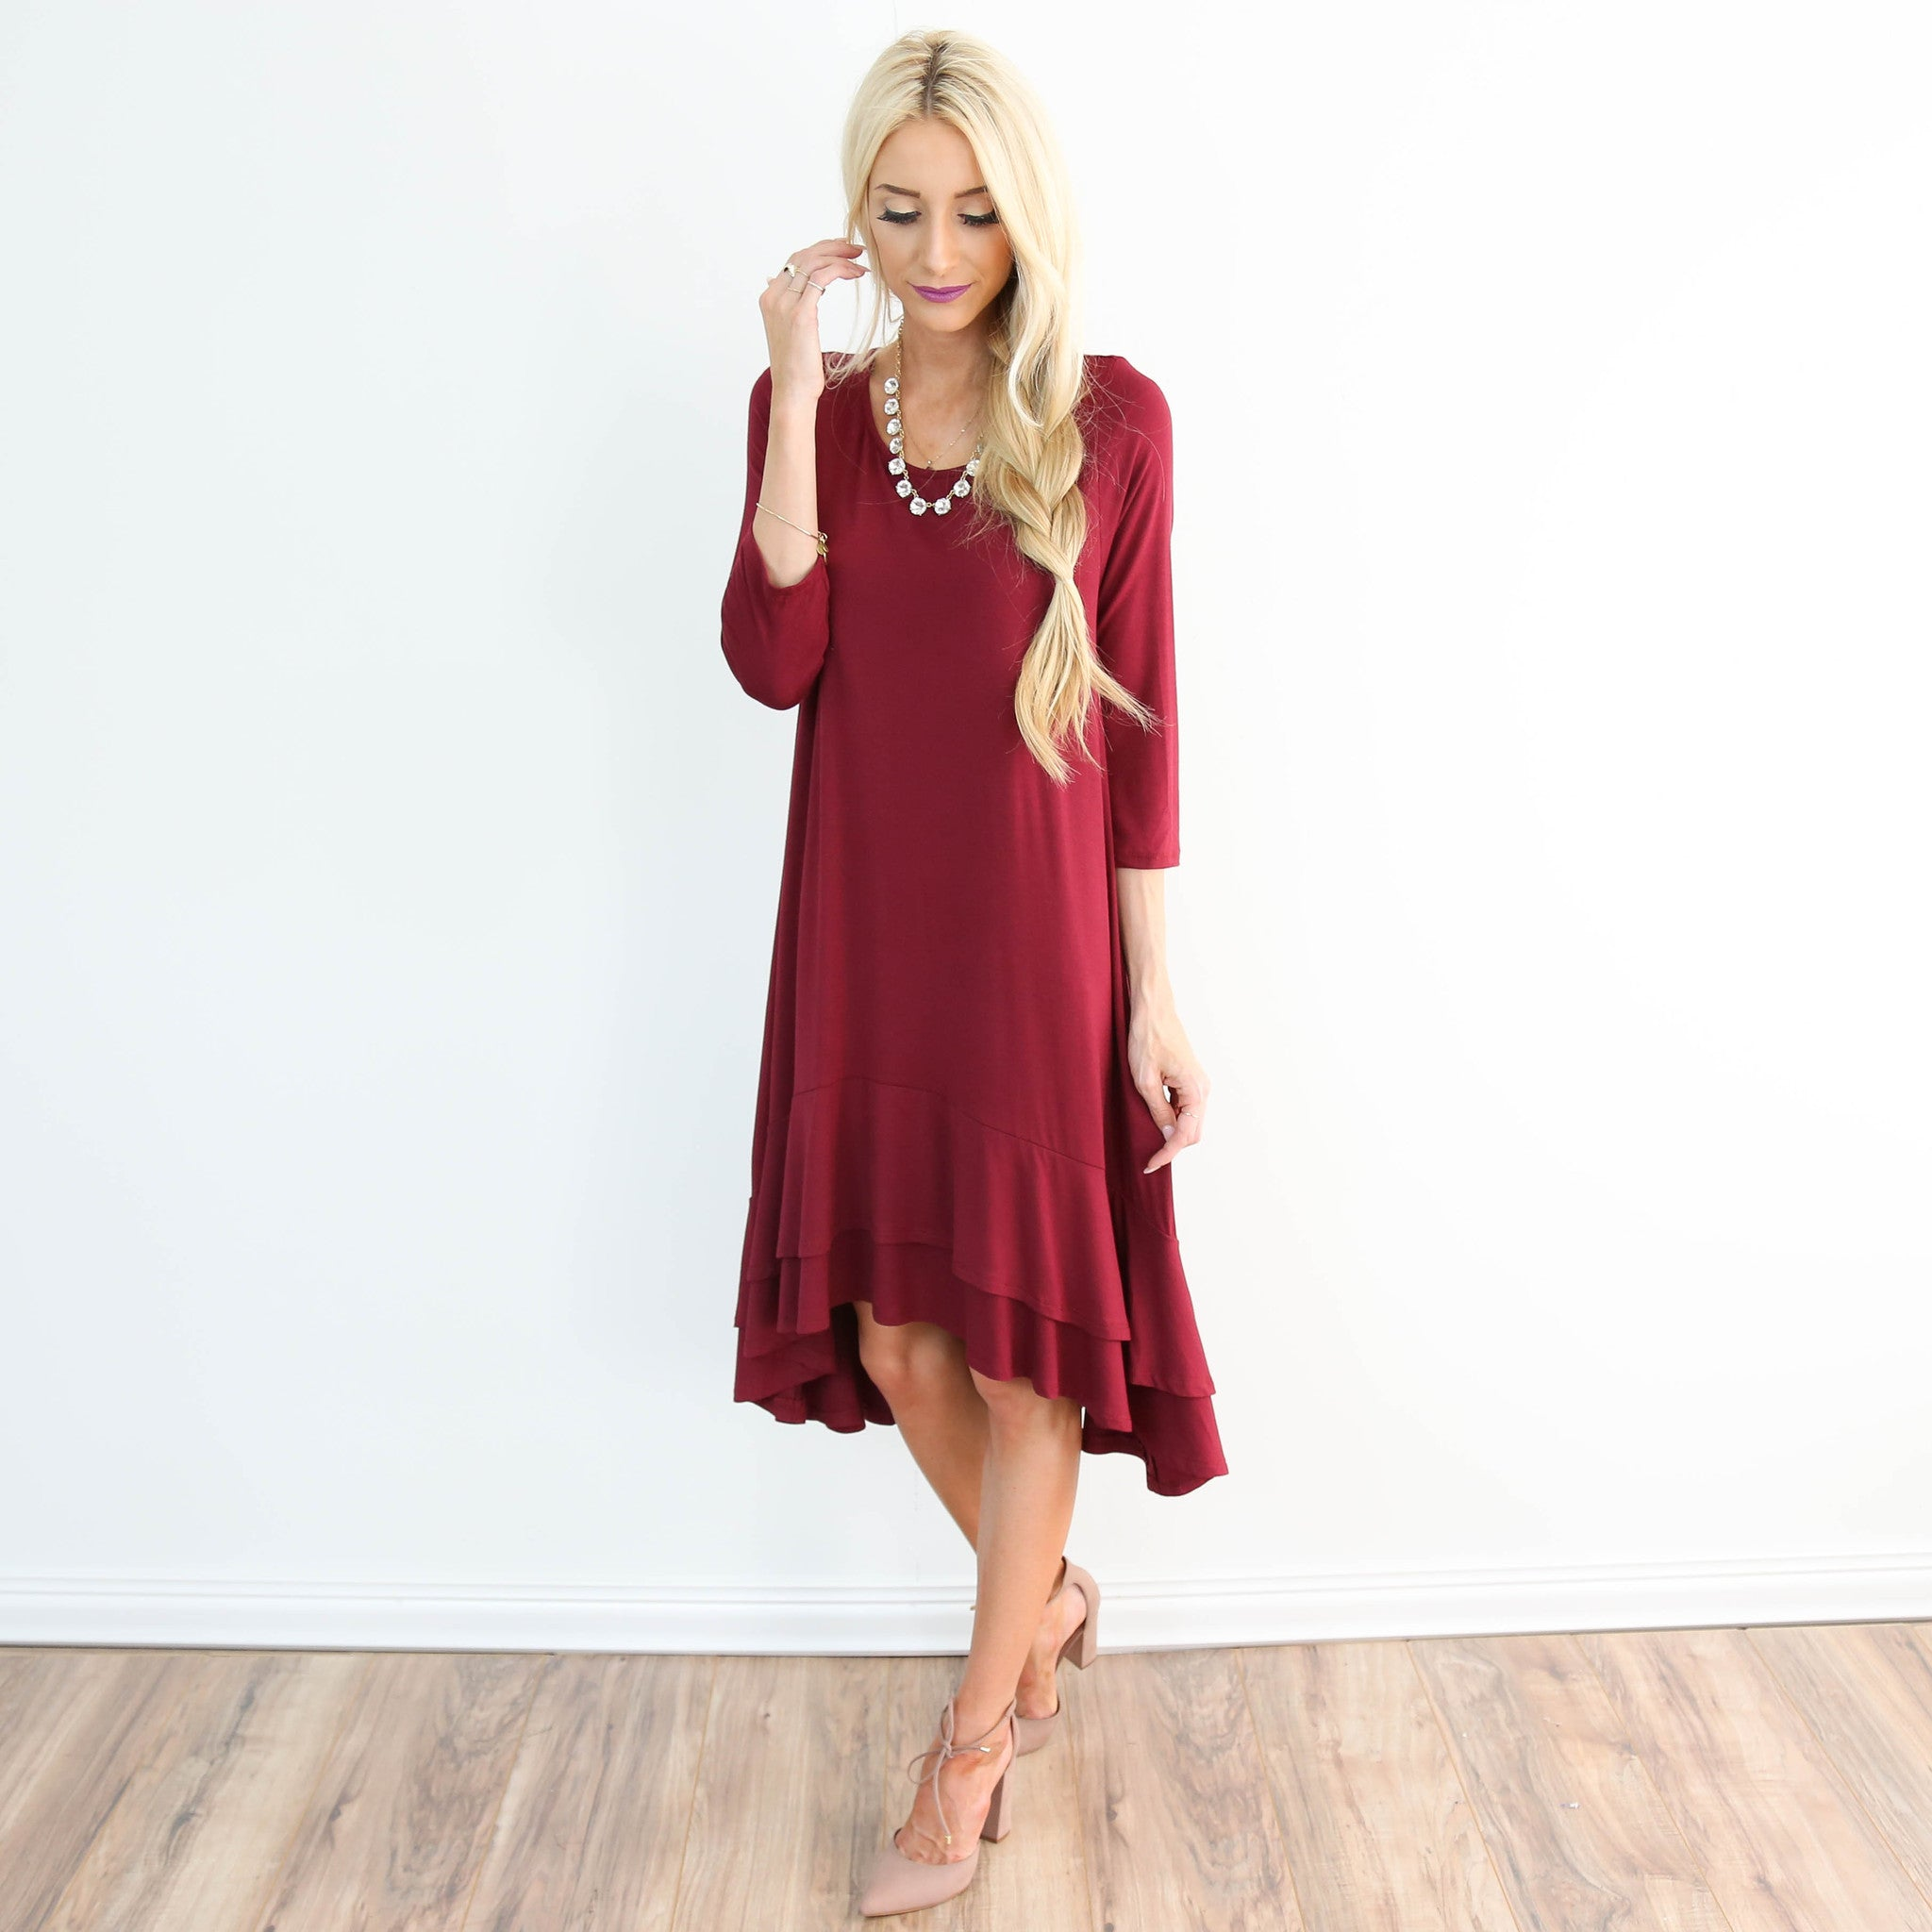 Sandra Ruffle Dress in Wine